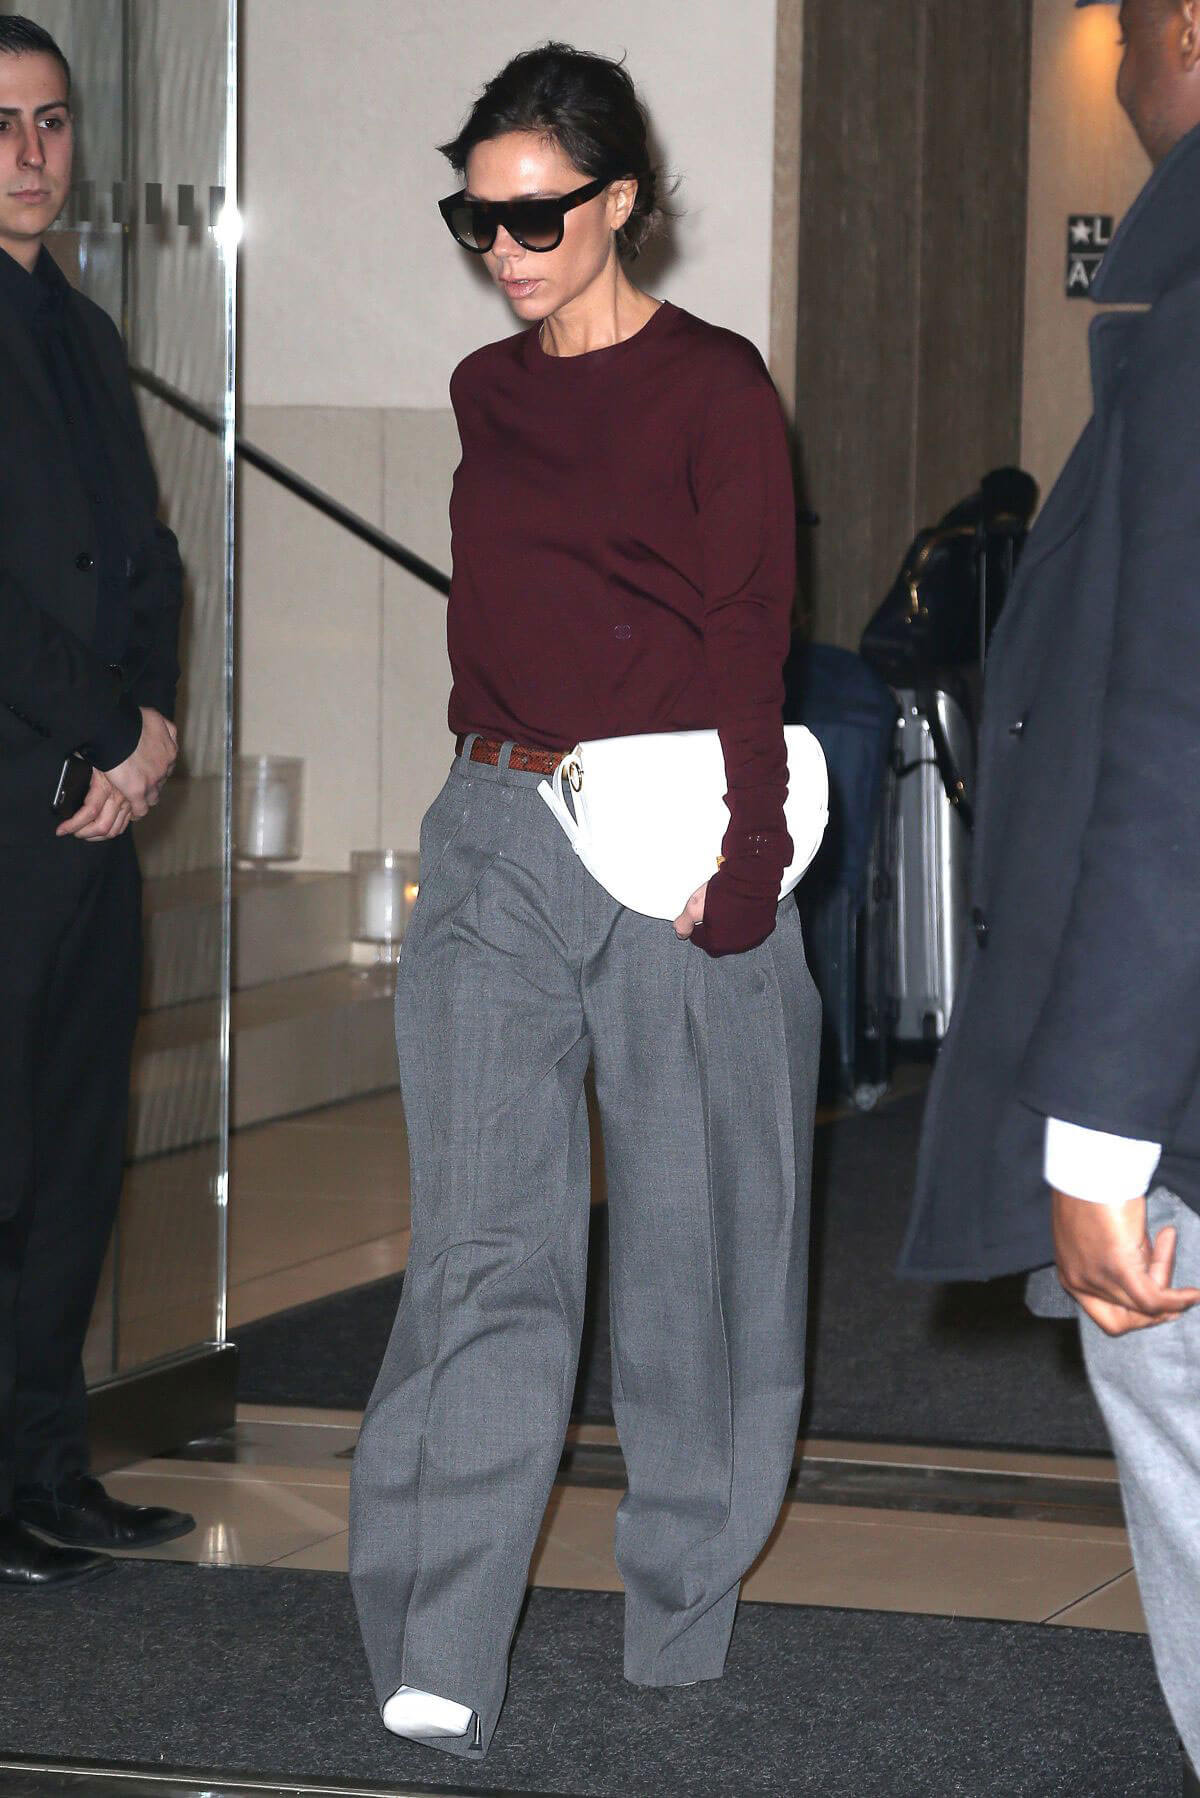 Victoria Beckham Leaves Her Hotel in New York